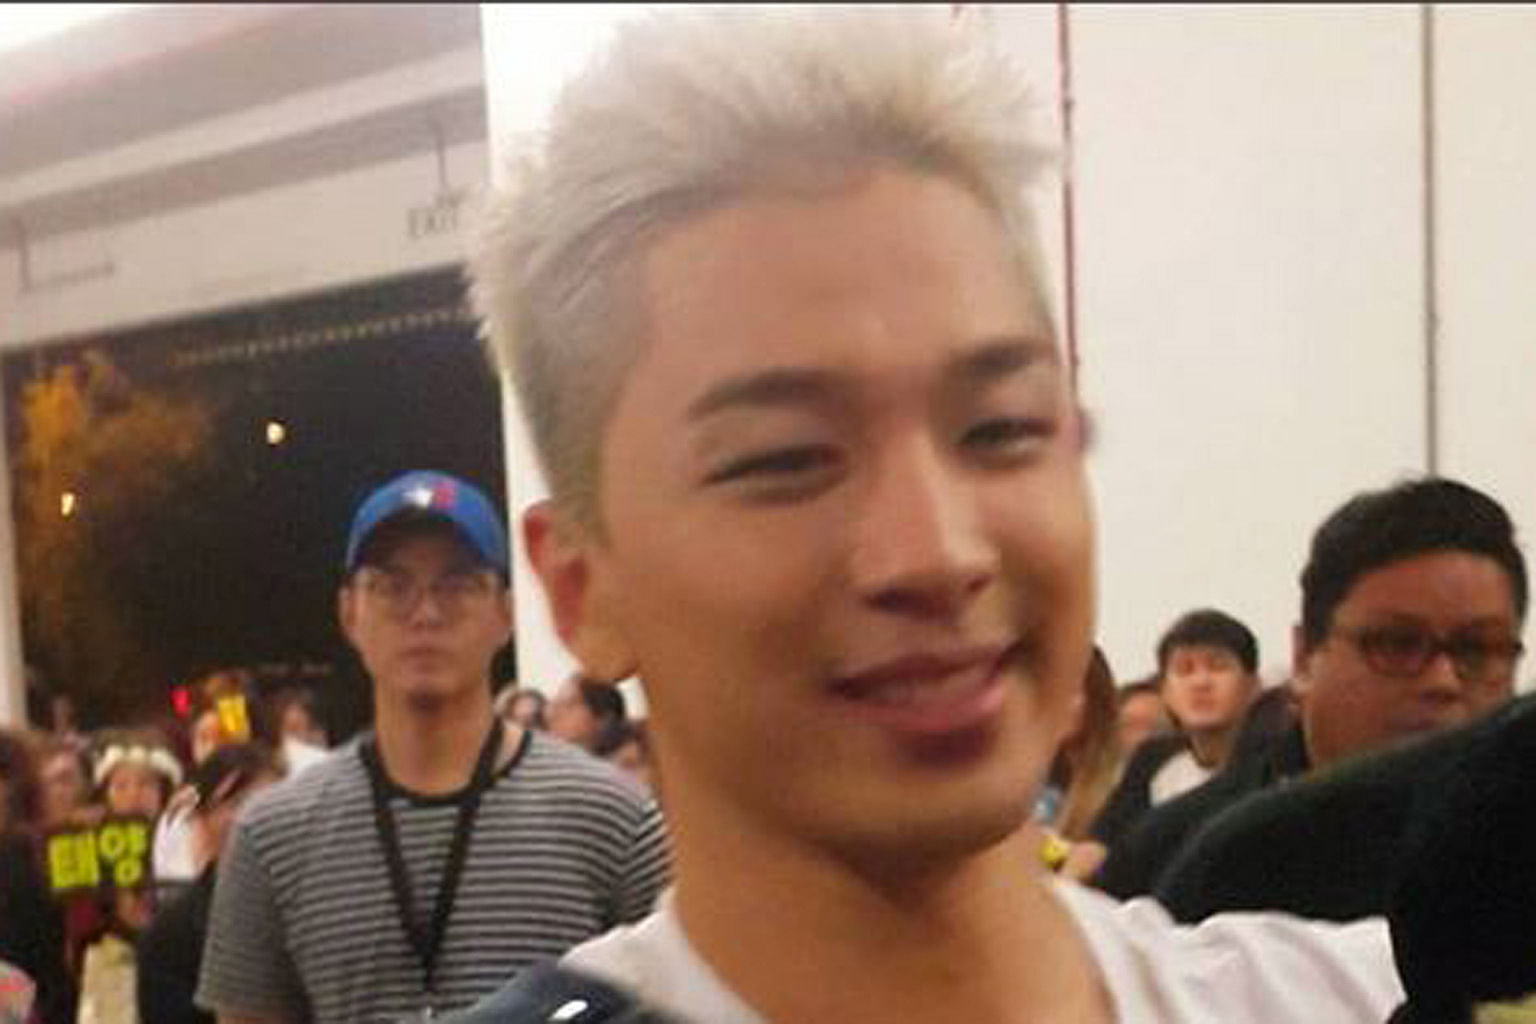 Taeyang Opens Up About His Marriage And Struggles Entertainment News Top Stories The Straits Times